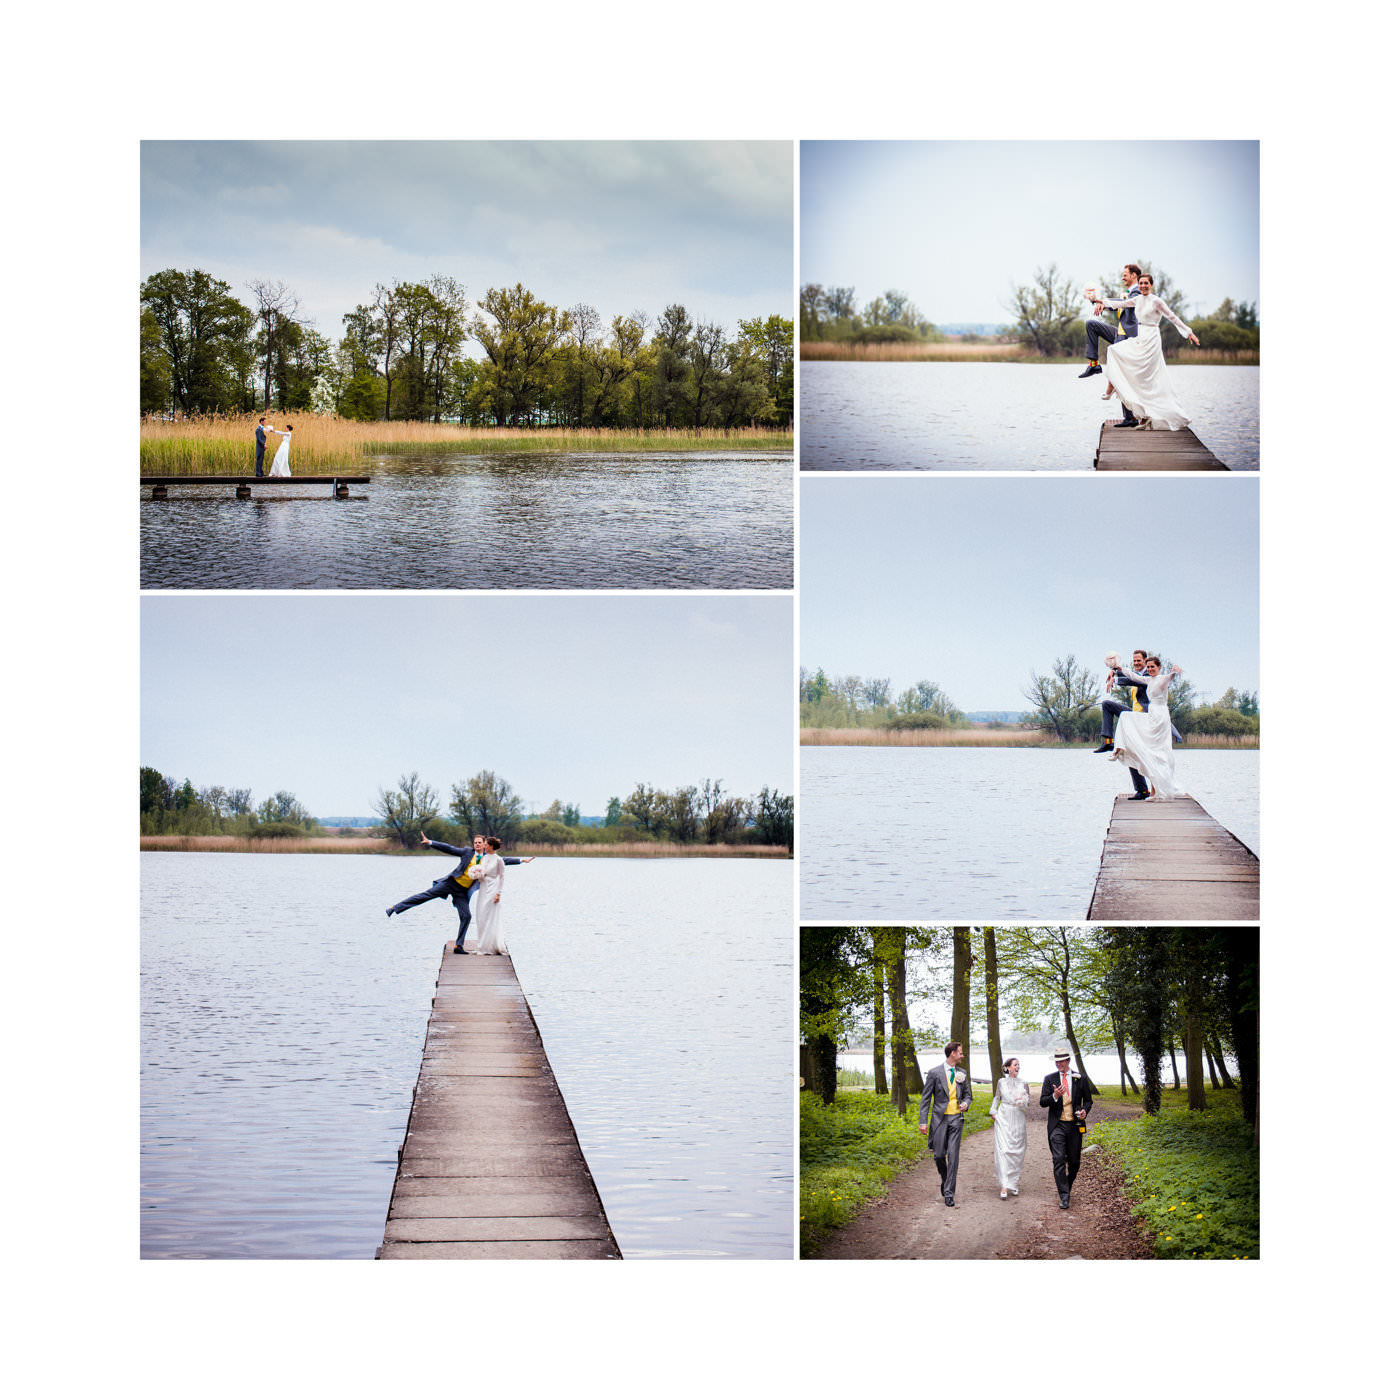 Caro & Albi | Wedding at Gushof Wilsickow in the Uckermark, North of Berlin, Germany